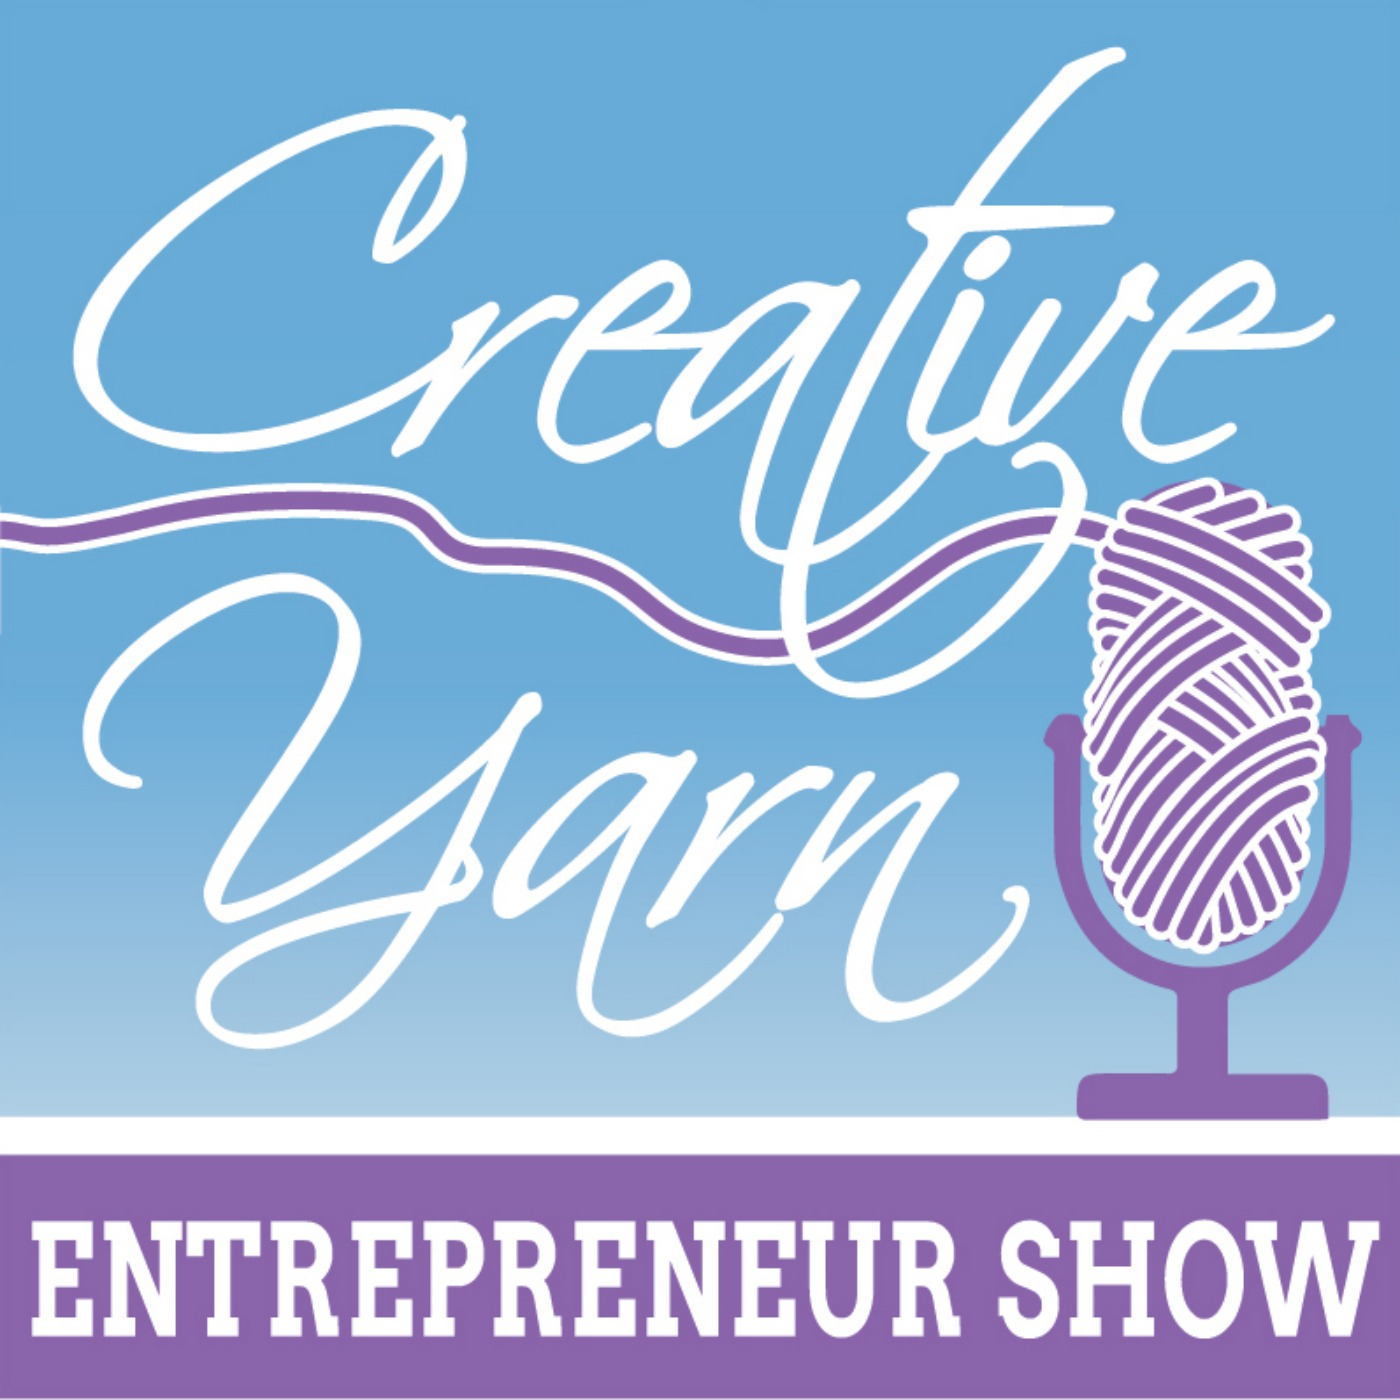 Episode 16: Turning Your Passion Into Your Business in 2015 with Carlota Zimmerman, the Creativity Yenta - The Creative Yarn Entrepreneur Show